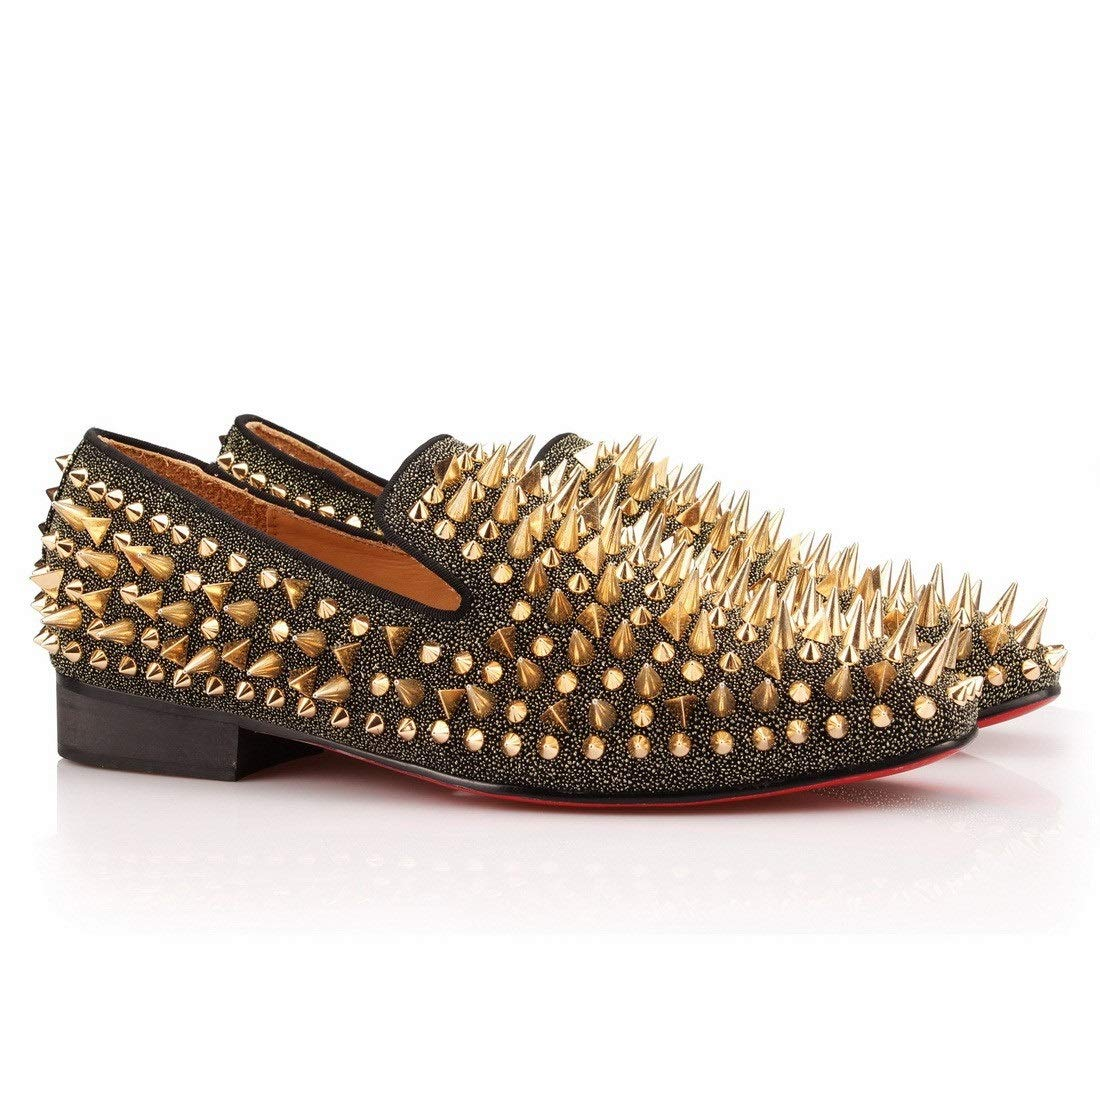 COOL TIRO Spikes Mens Loafers Smoking Slipper Casual Shoes Wedding Dress Men Flats Leather Party Shoes